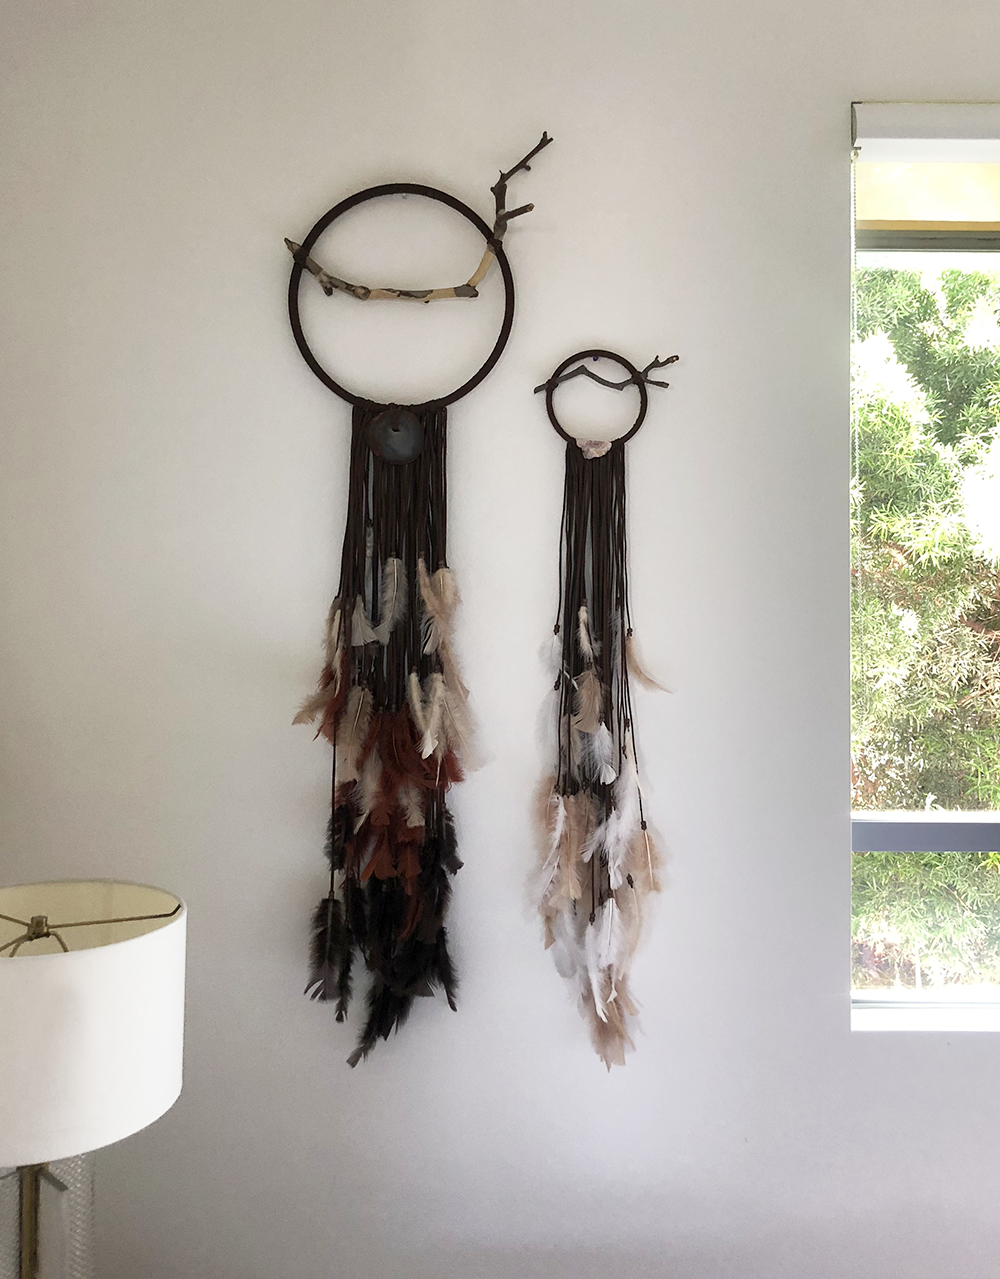 Shop Dreamcatchers - Handmade with healing stones from Ojai and Tucson